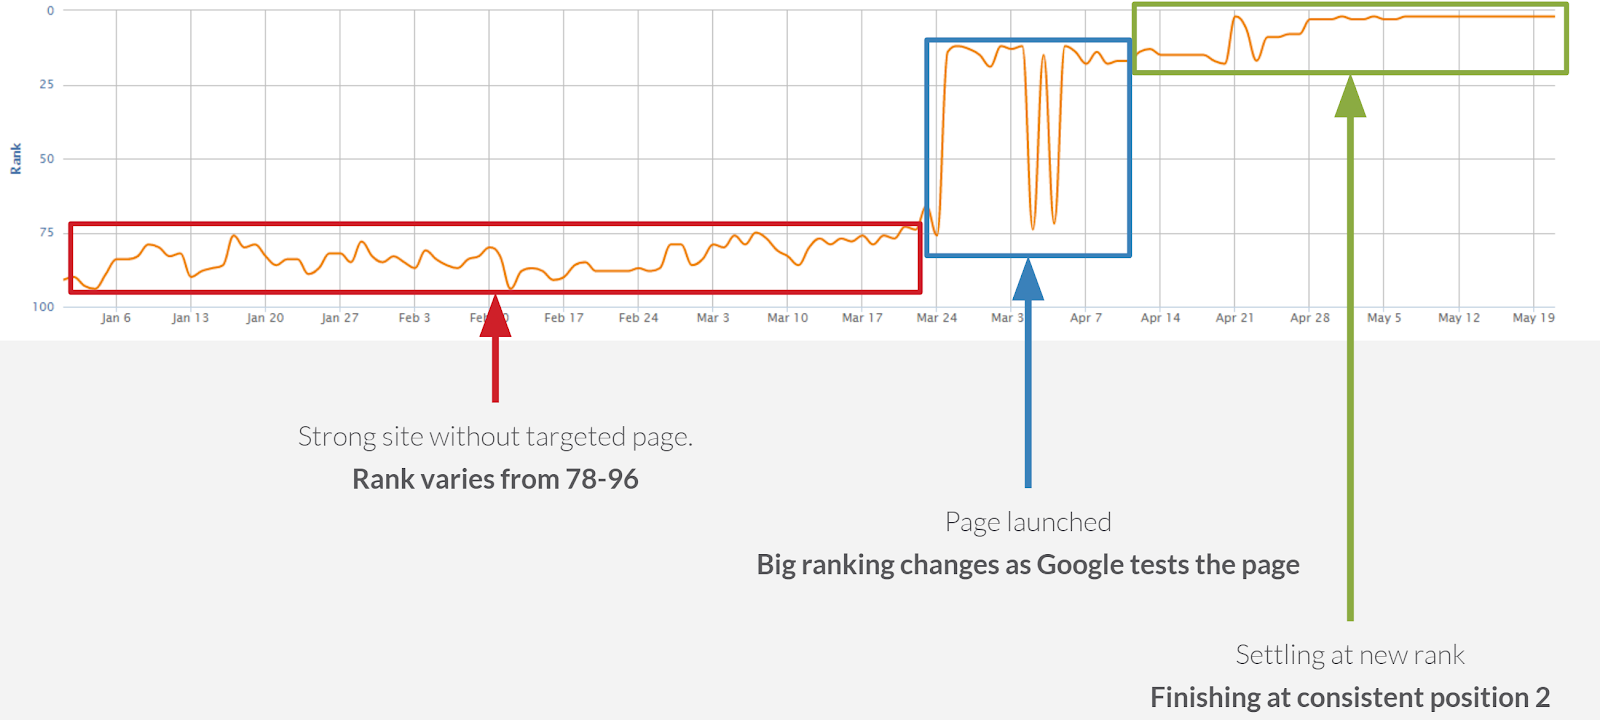 screenshot of graph showing timeline before launching a targeted page compared to after, where it finishes as consistent position 2